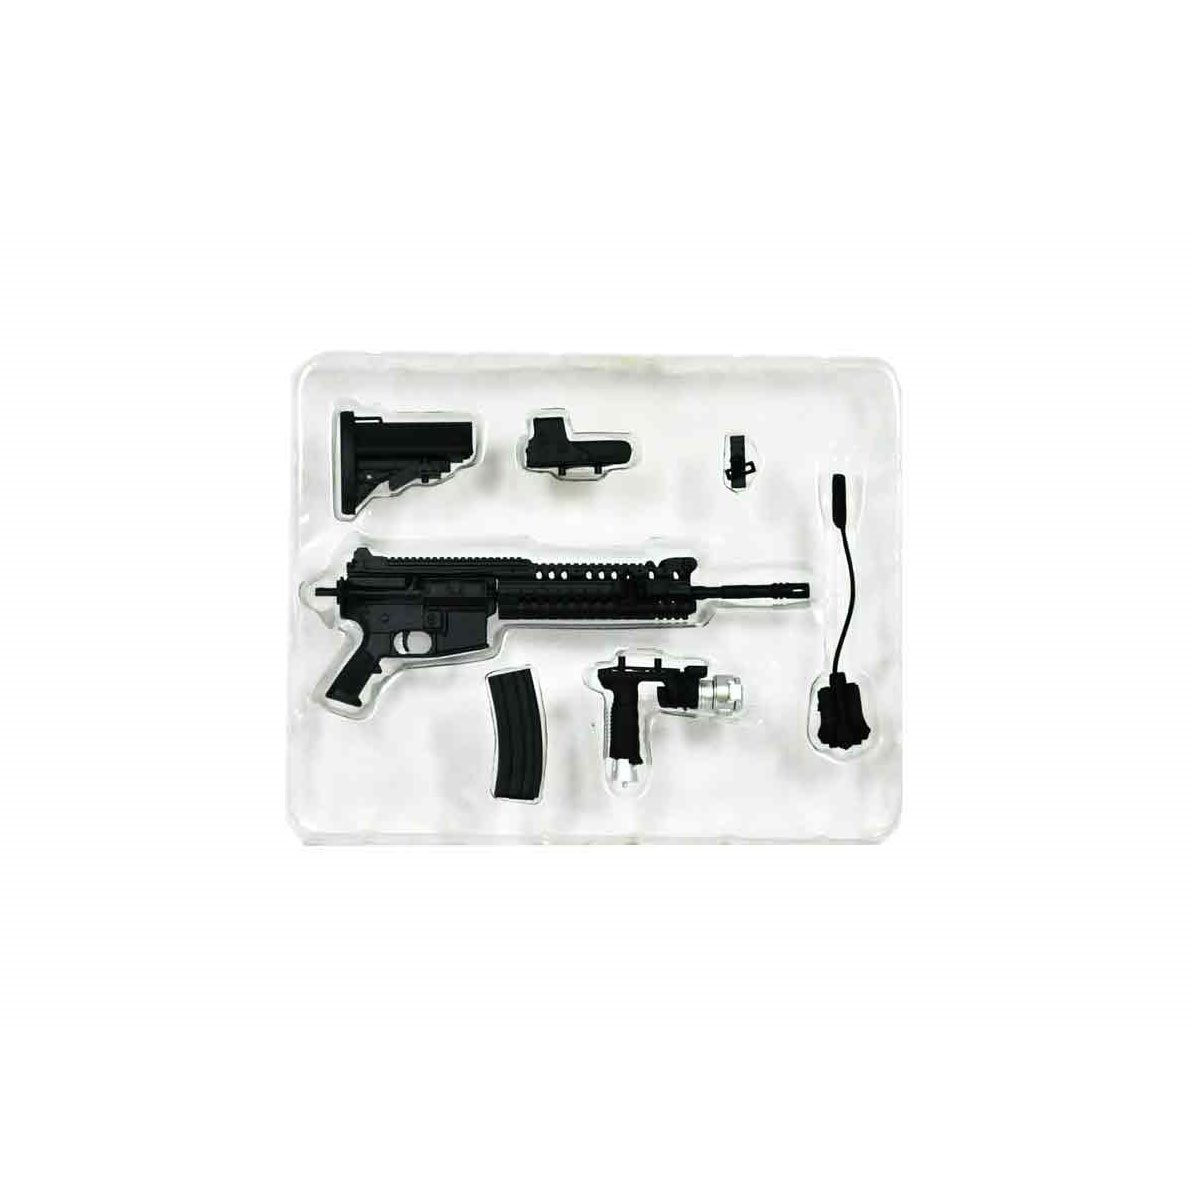 Miniatura de Arma Rifle M4 SIR Arsenal Guns